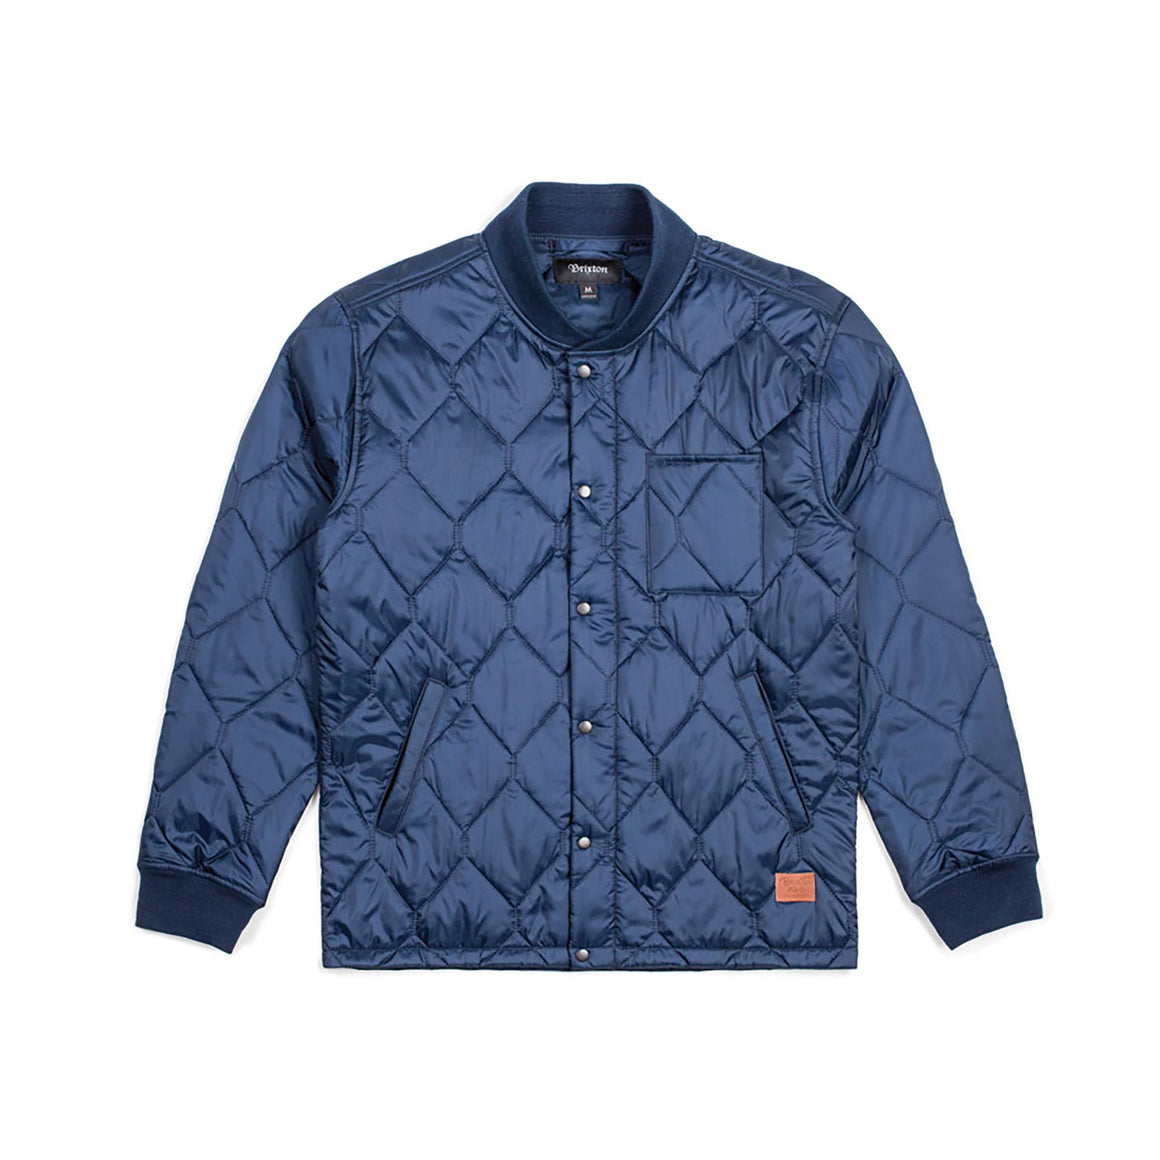 Crawford Jacket - Navy